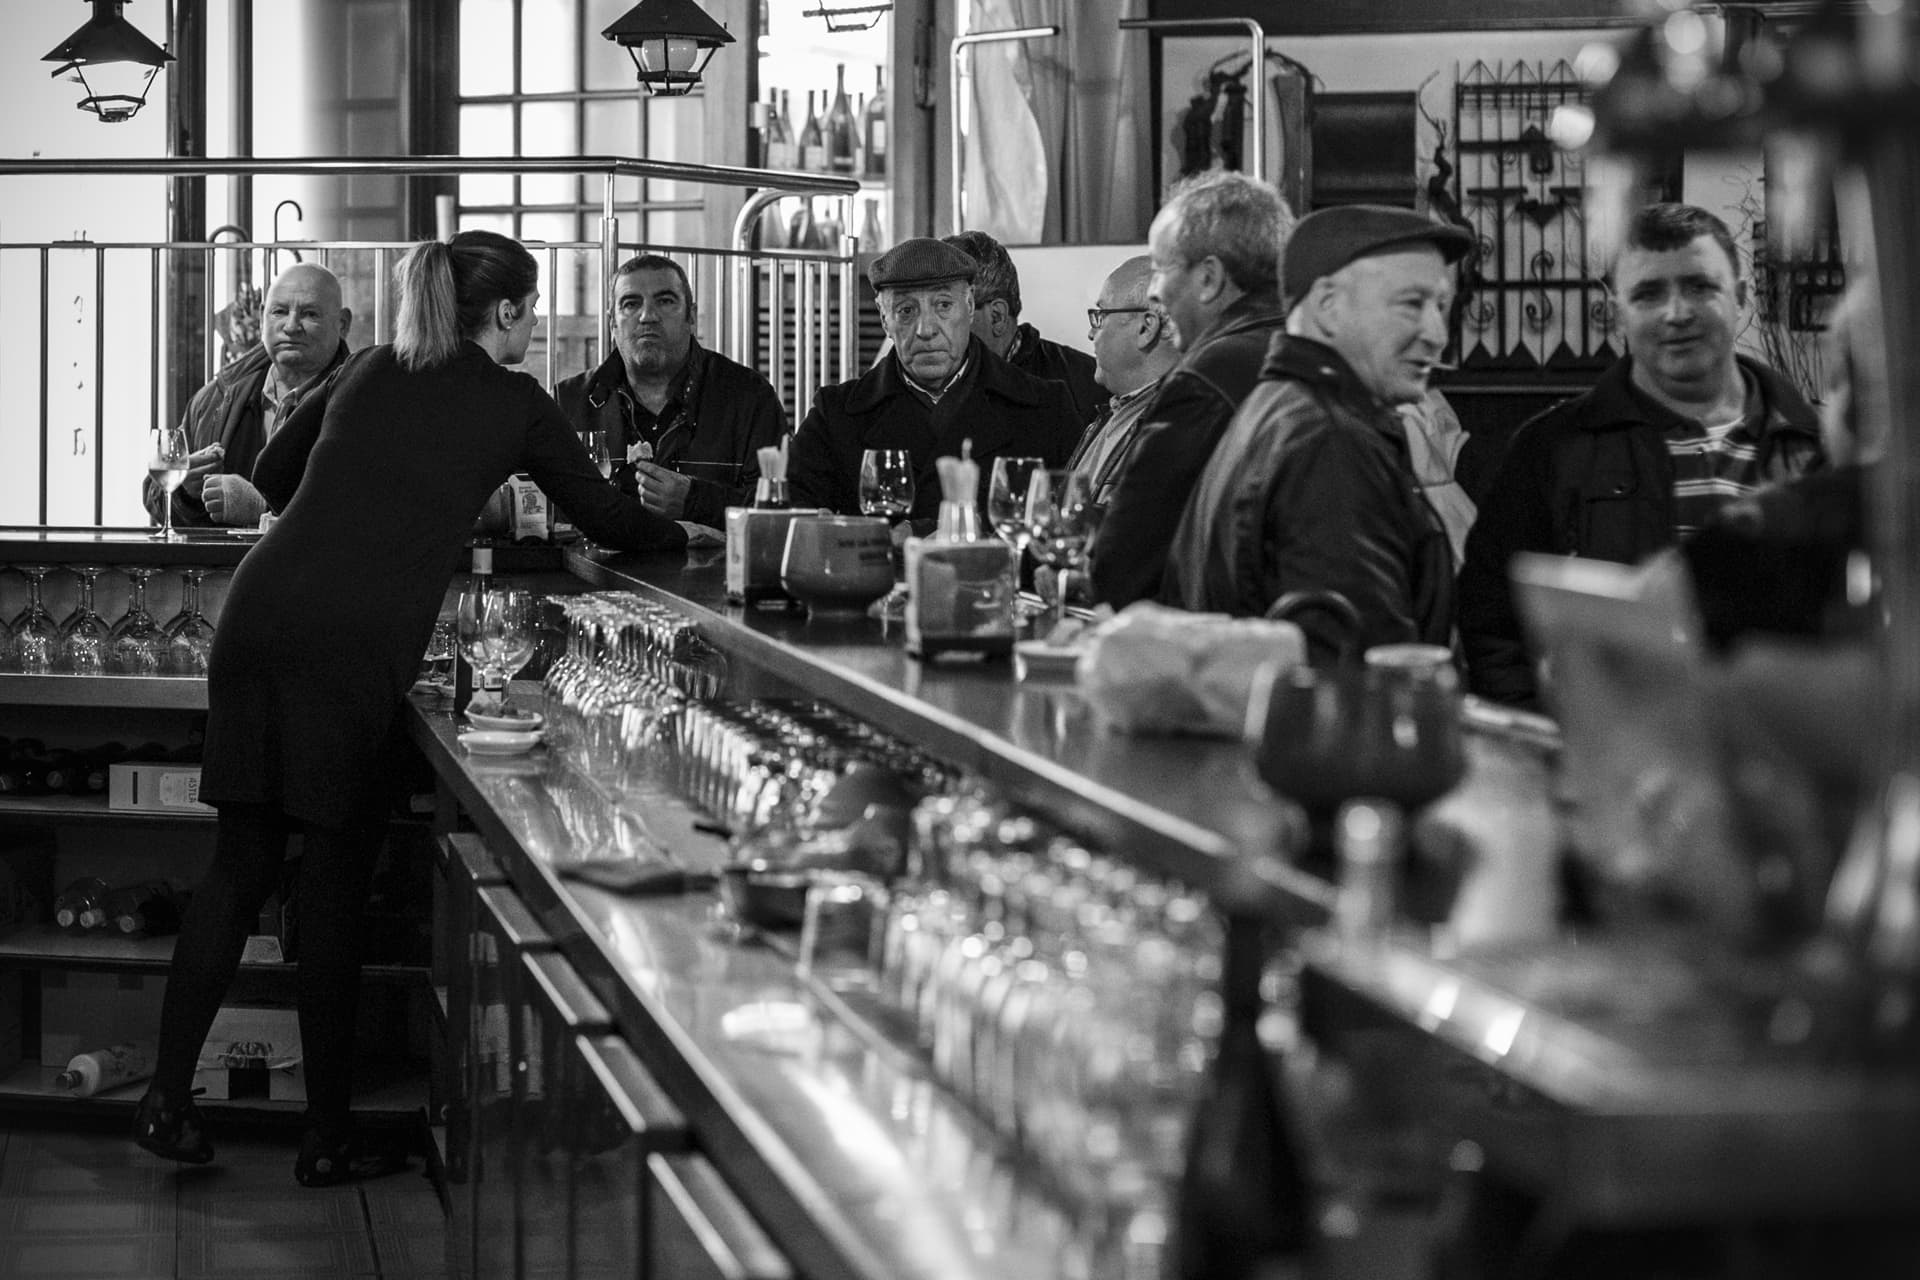 It's wonderful to find regular customers with their berets and their umbrellas, having a glass of wine and tapas. Two worlds, traditional and avant-garde,intersecting in the same space.